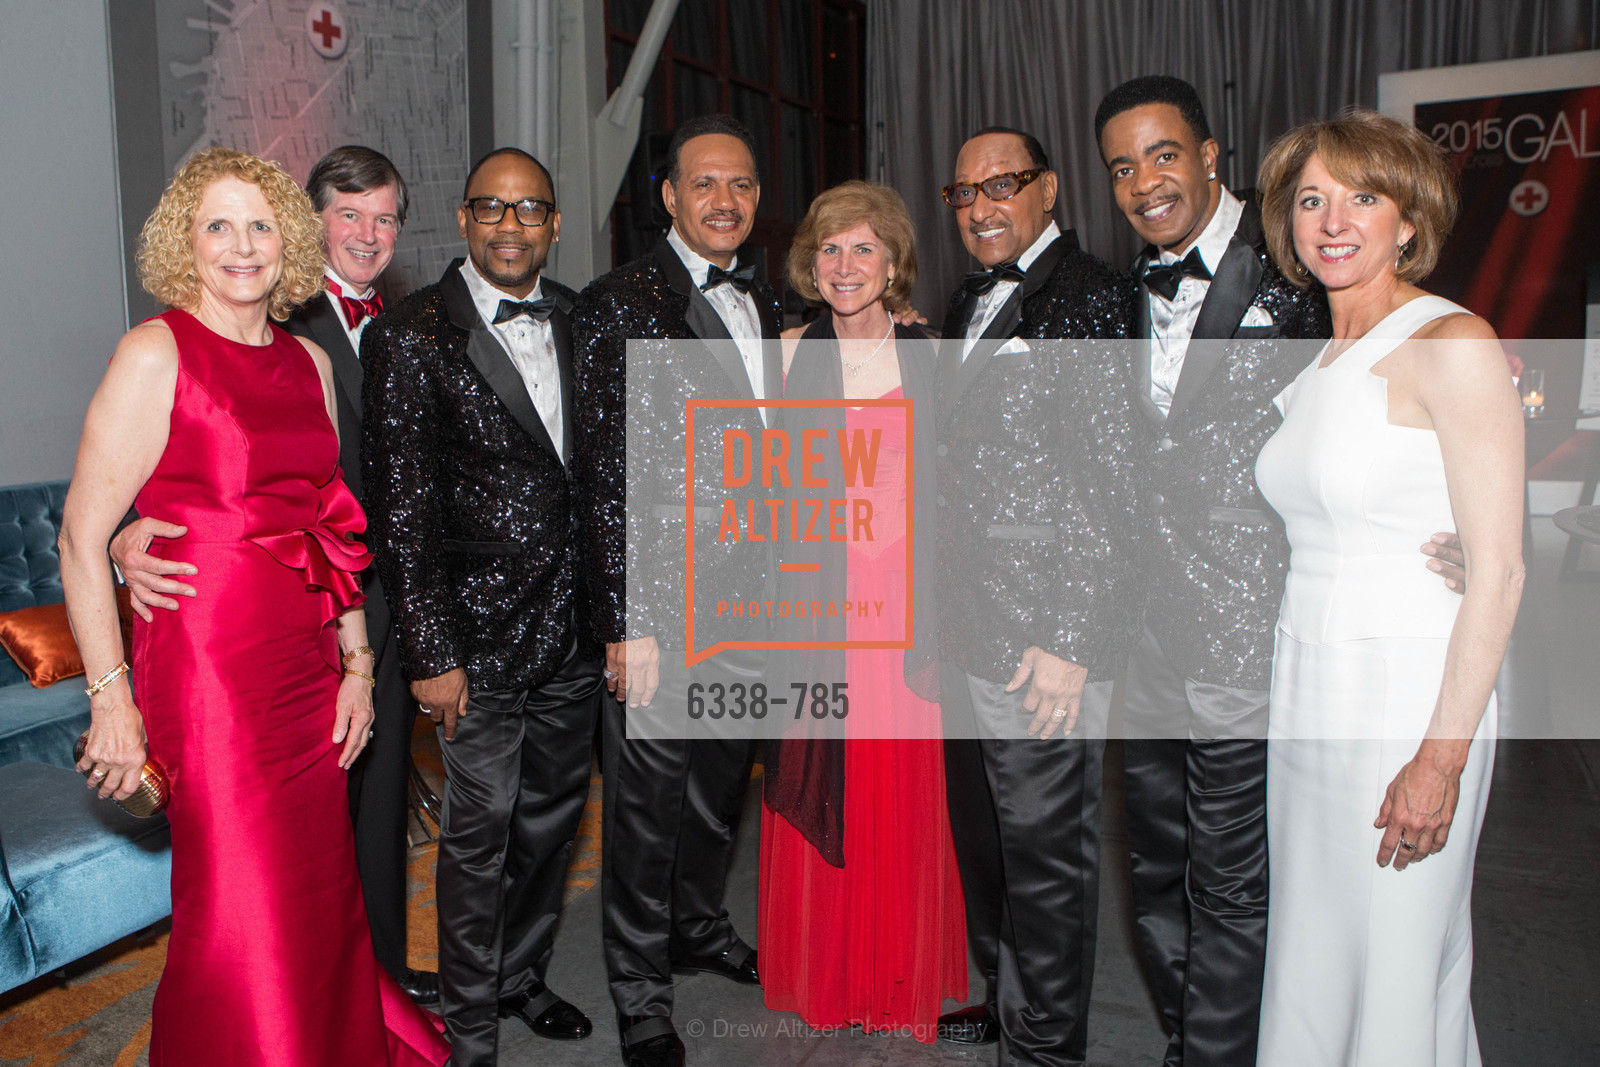 Sarah Earley, Anthony Earley, Lawrence Payton, Ronnie McNair, Gail McGovern, Duke Fakir, Spike Bonhart, Teresa Briggs, 2015 RED CROSS Gala, US, April 12th, 2015,Drew Altizer, Drew Altizer Photography, full-service agency, private events, San Francisco photographer, photographer california